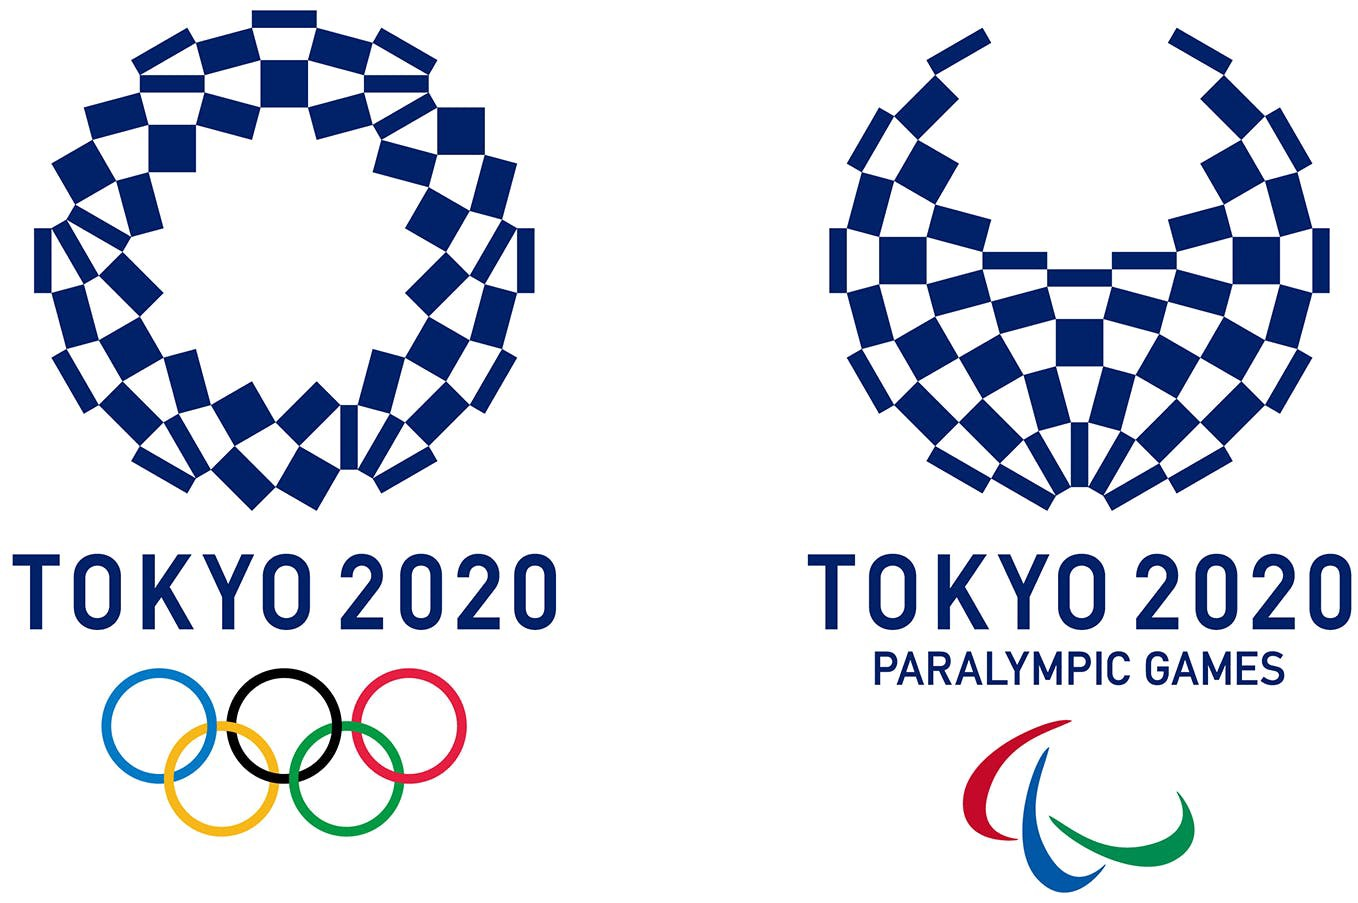 Things To Consider Before Volunteering For Tokyo 2020